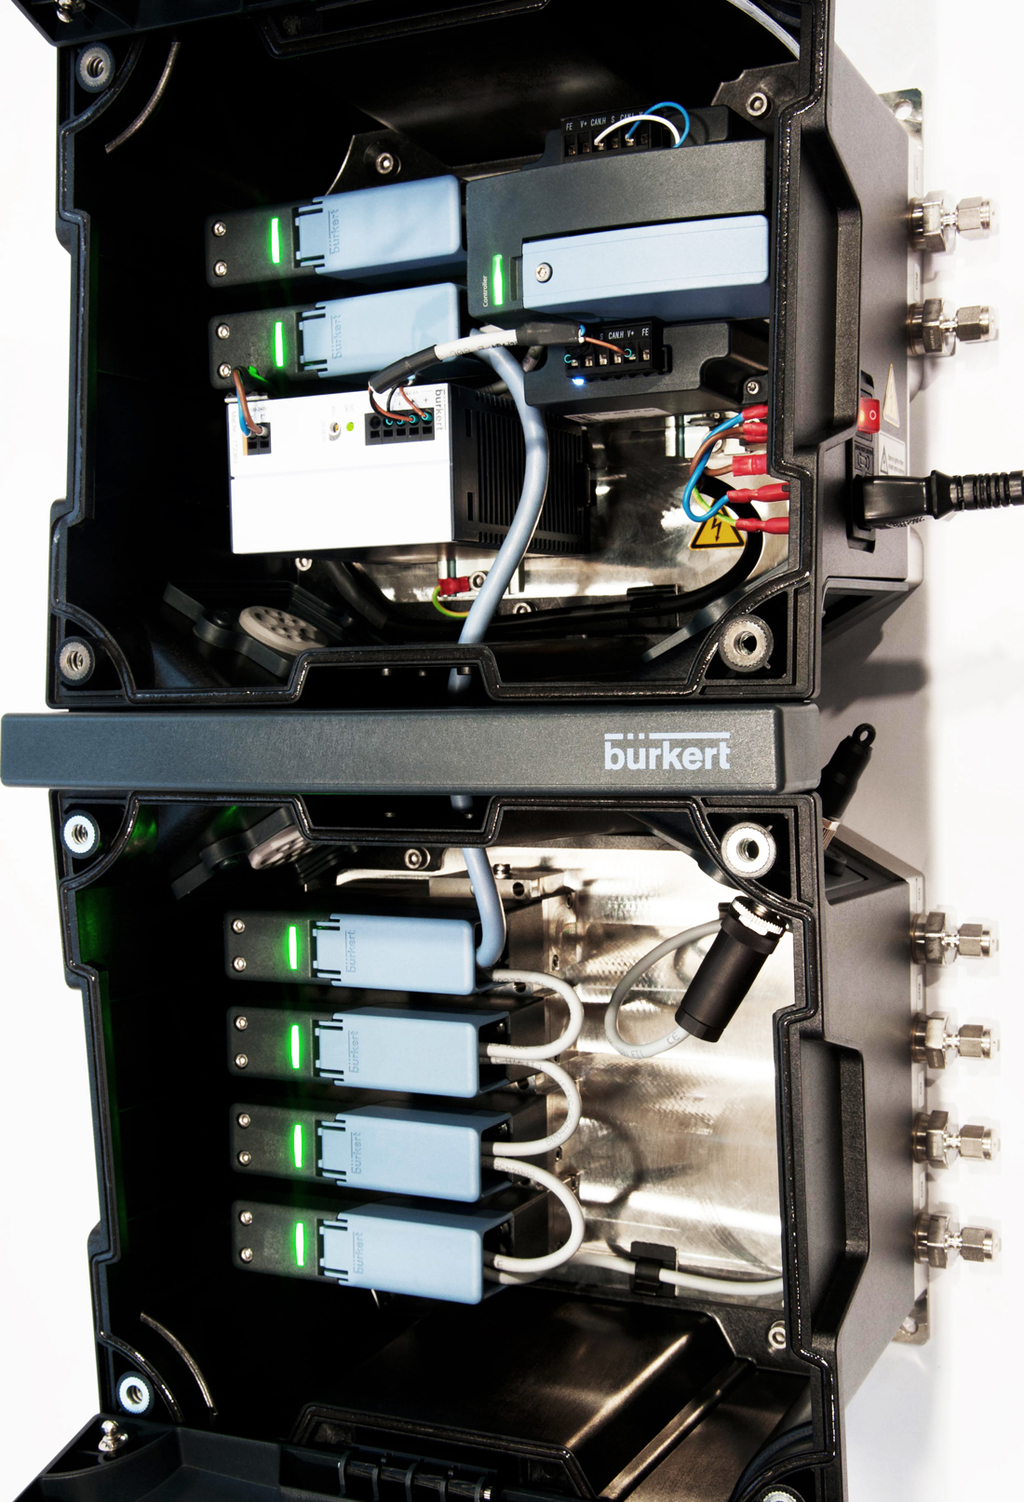 Burkert MultiMFC Gas Box